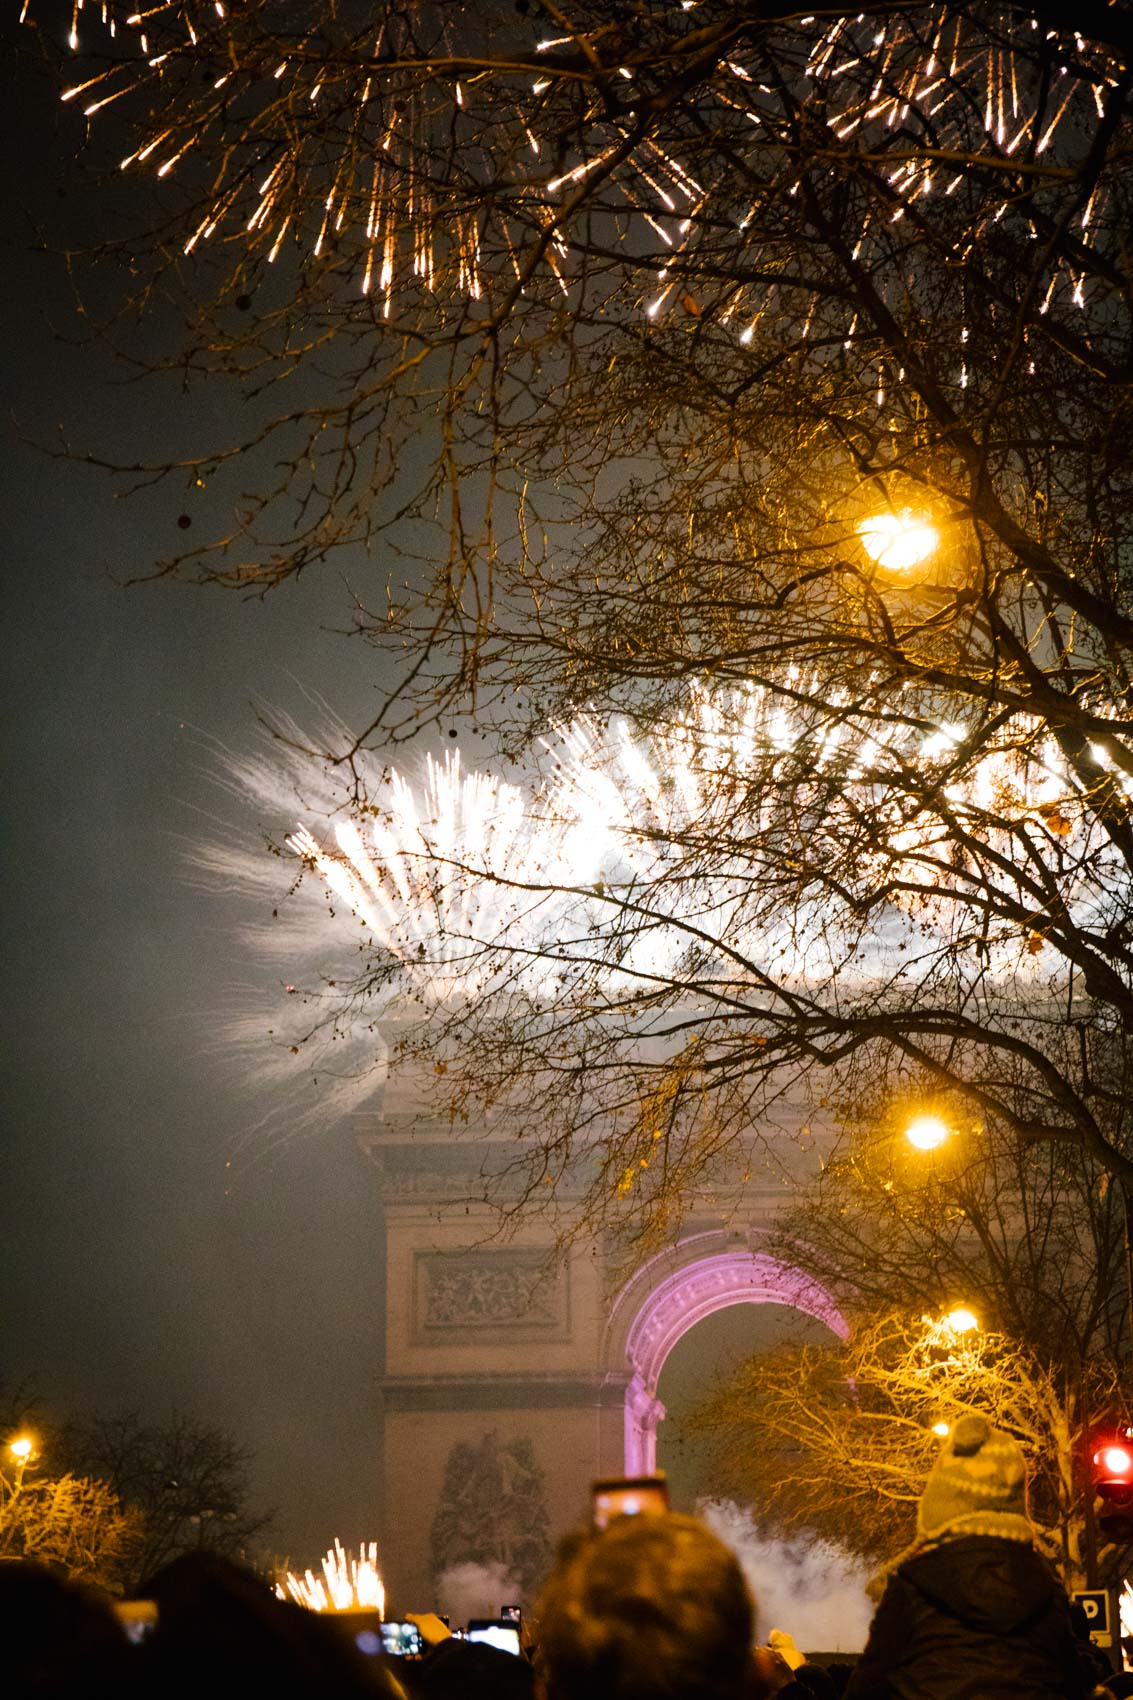 New Years in Paris - Arc de Triomphe Fireworks